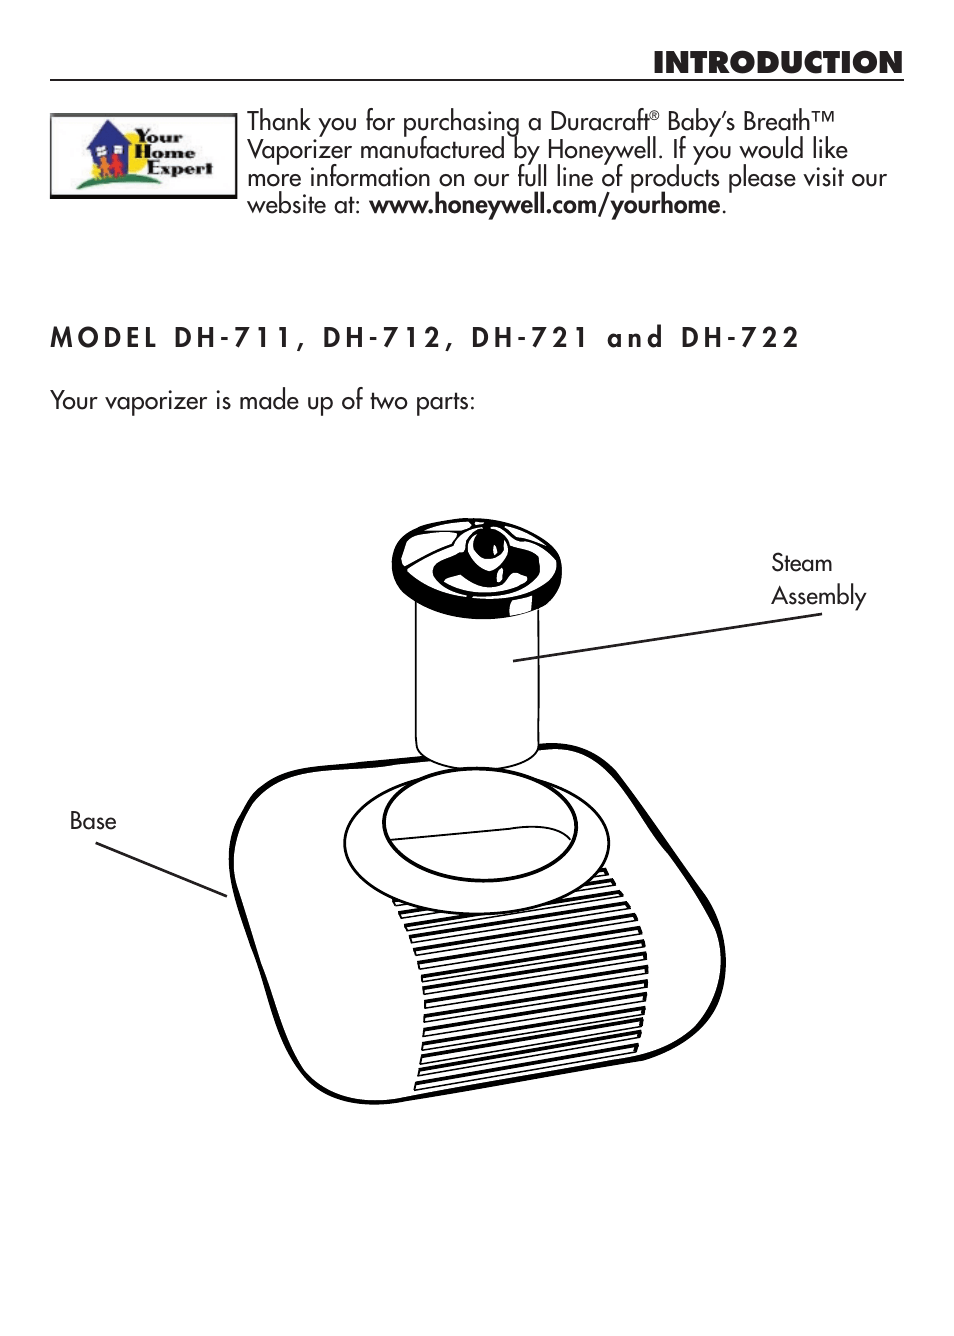 medium resolution of introduction duracraft baby s breath vaporizer dh 711 user manual page 3 11